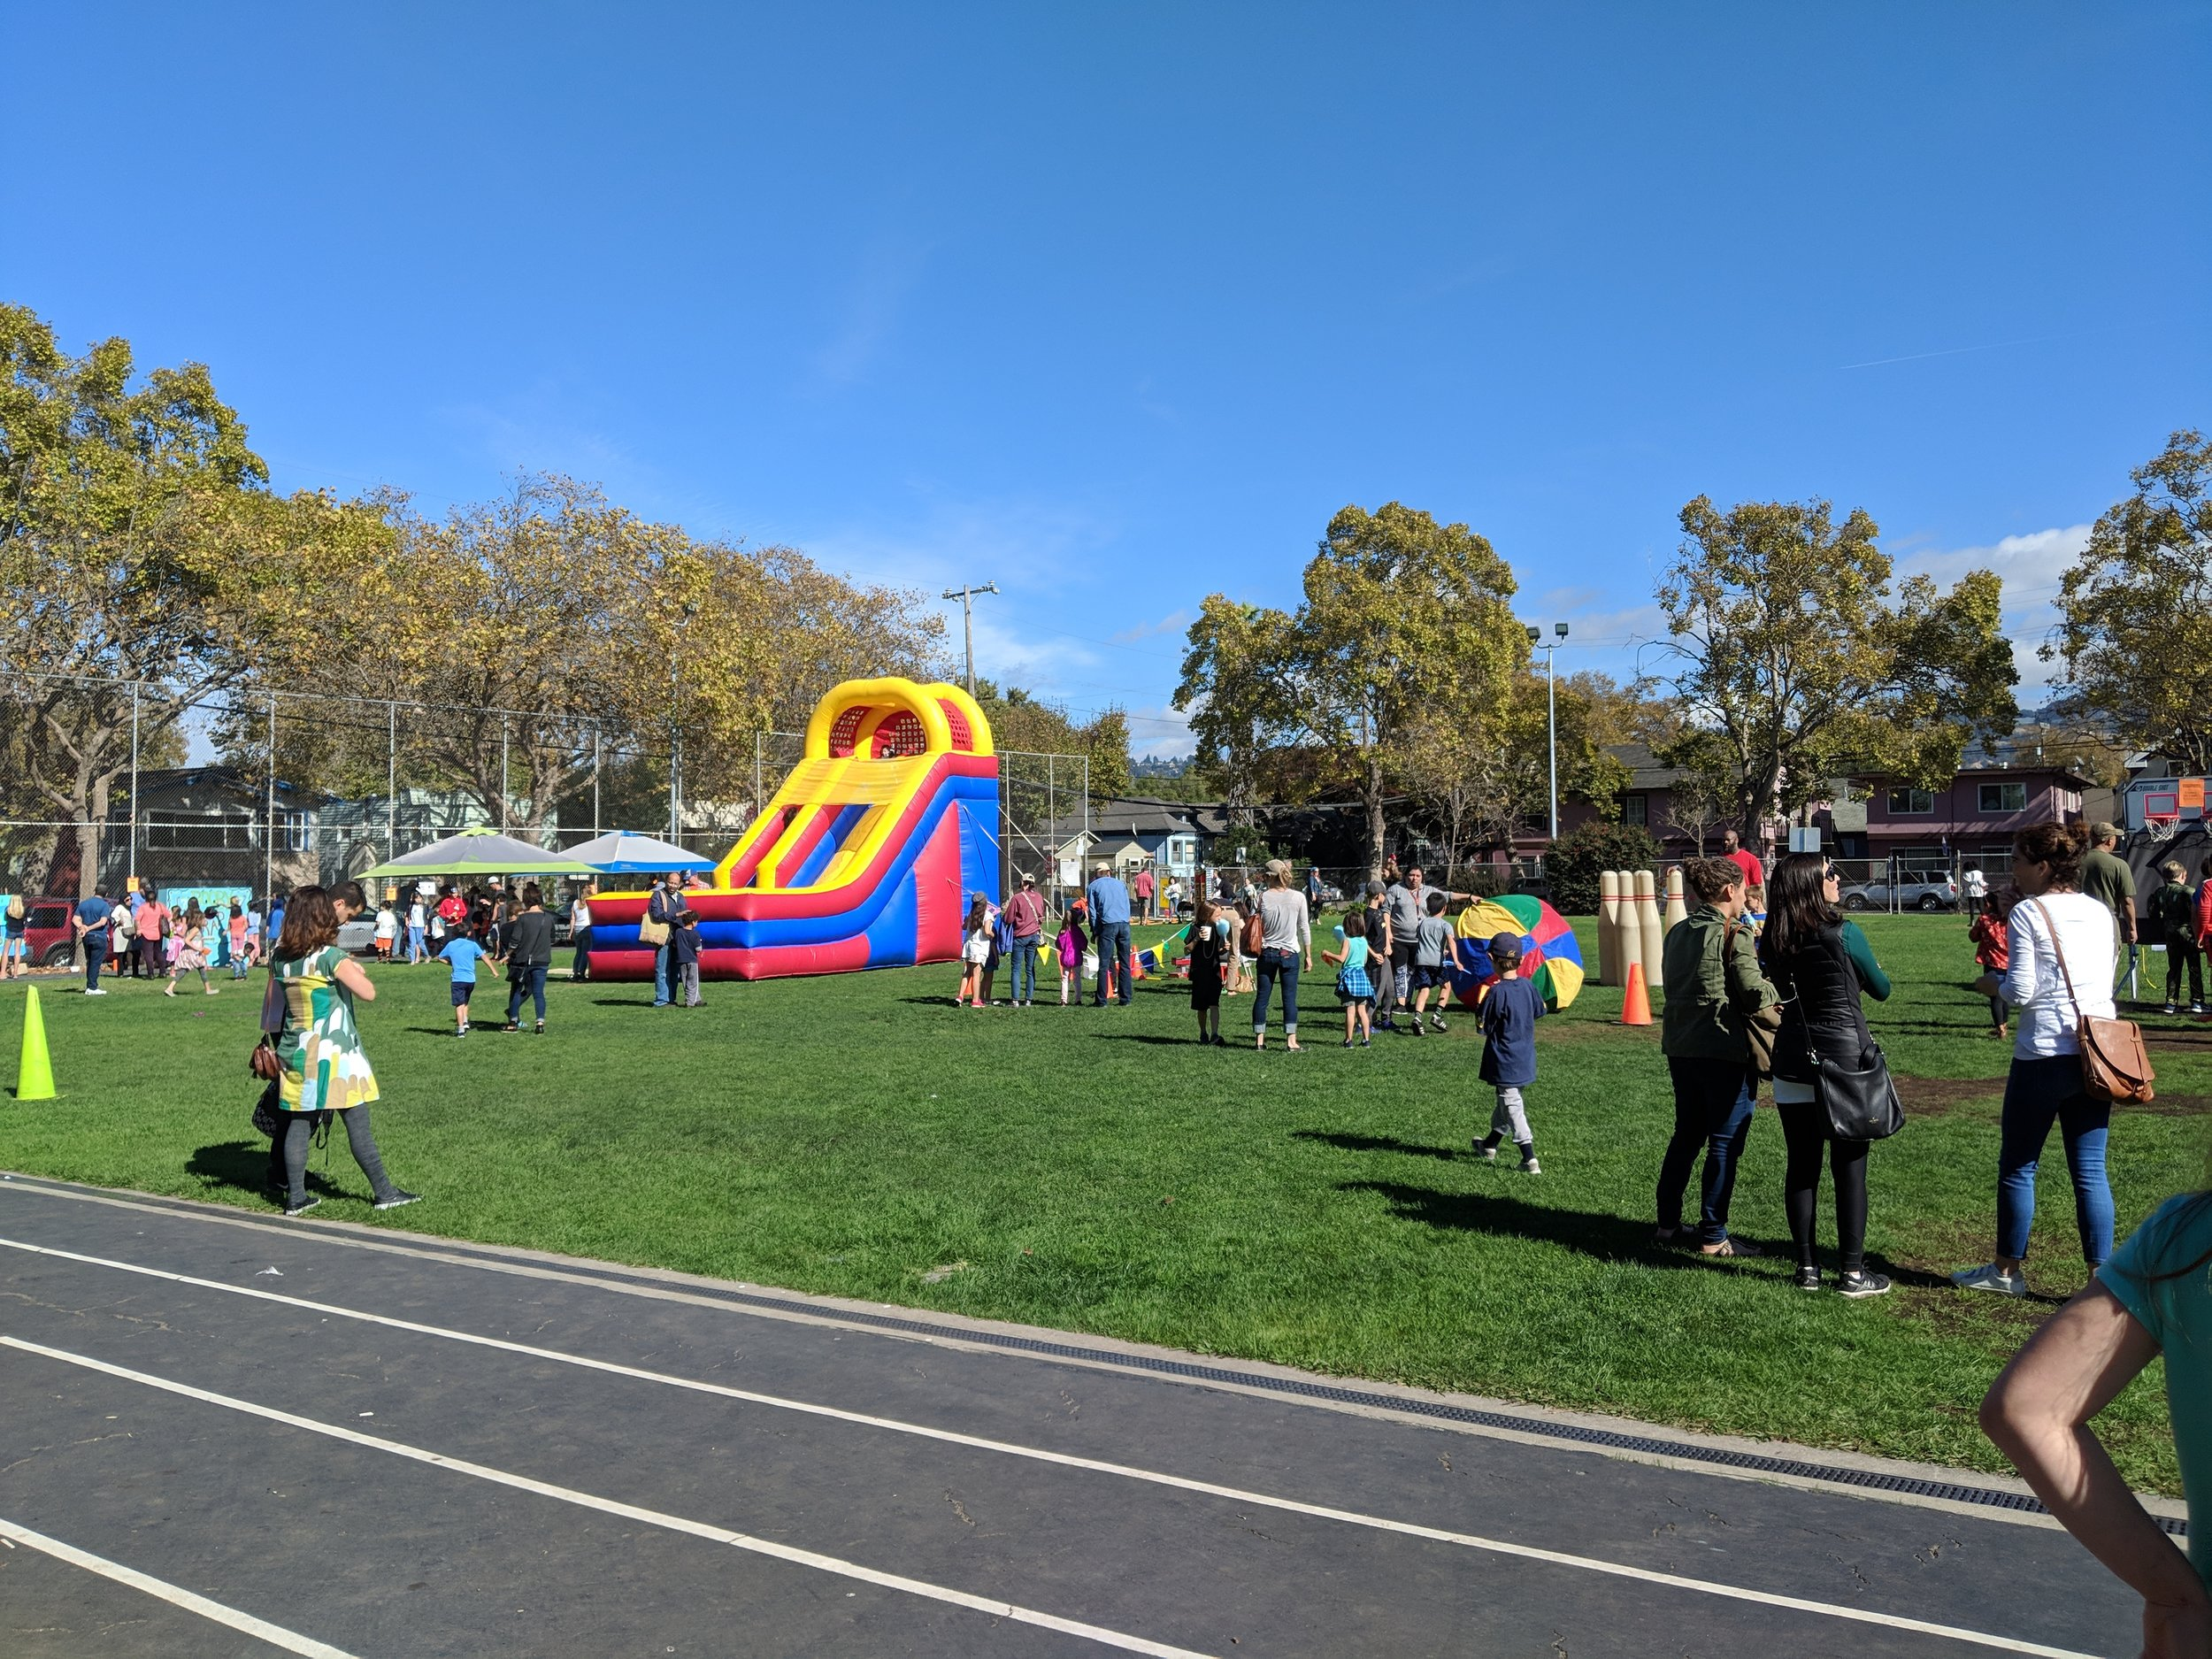 The Carnival is held on the Rosa Parks Field and the food service is in the cafeteria.